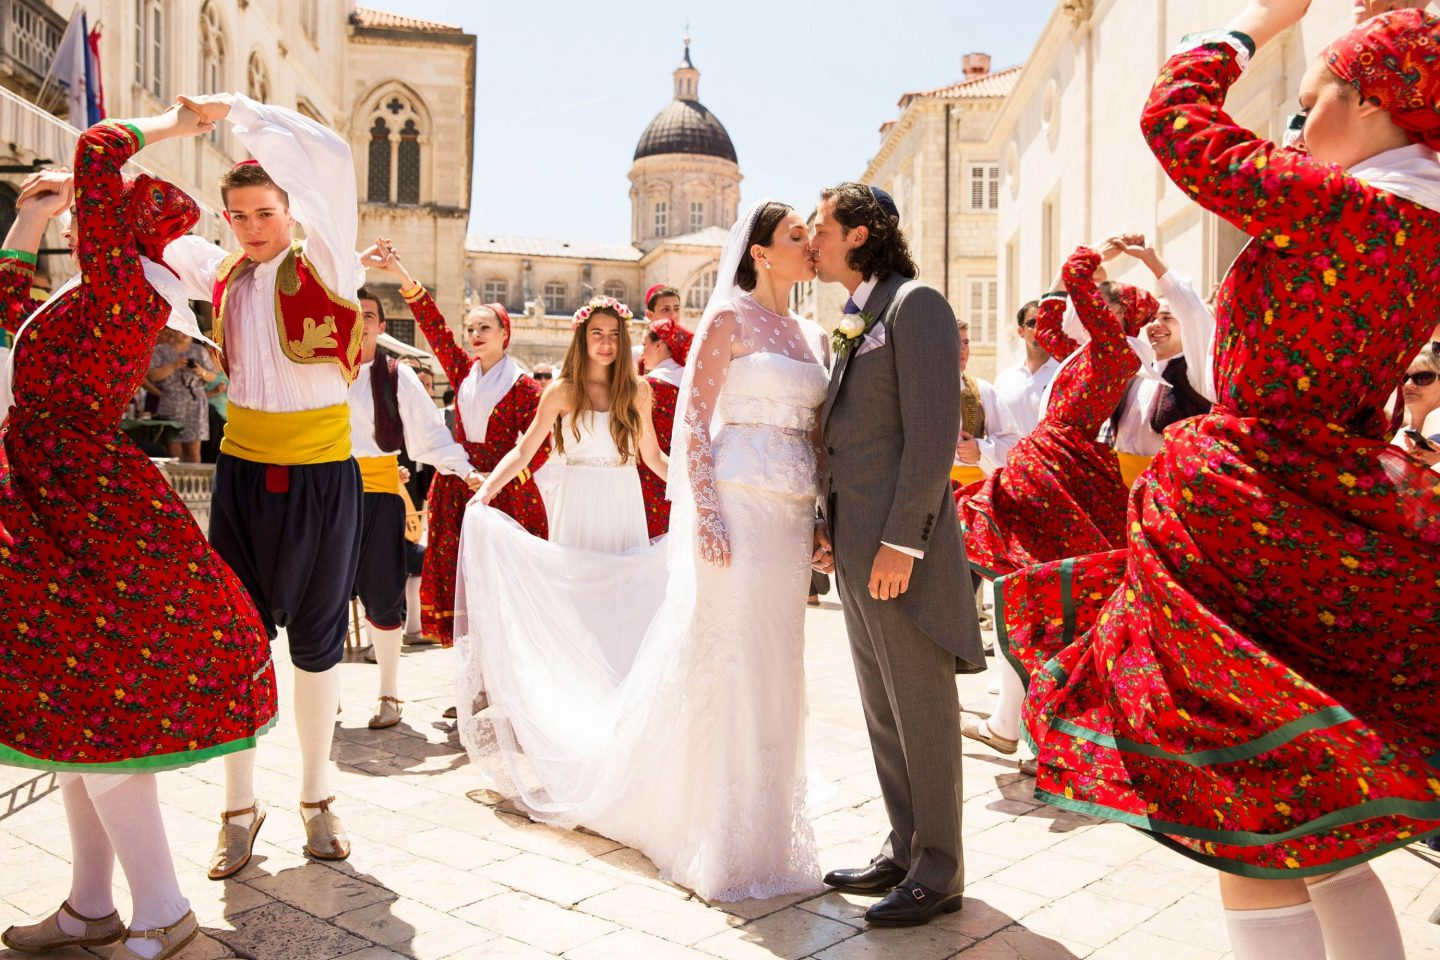 Newlyweds at this Dubrovnik Wedding in Croatia | Photo by Robert Fairer